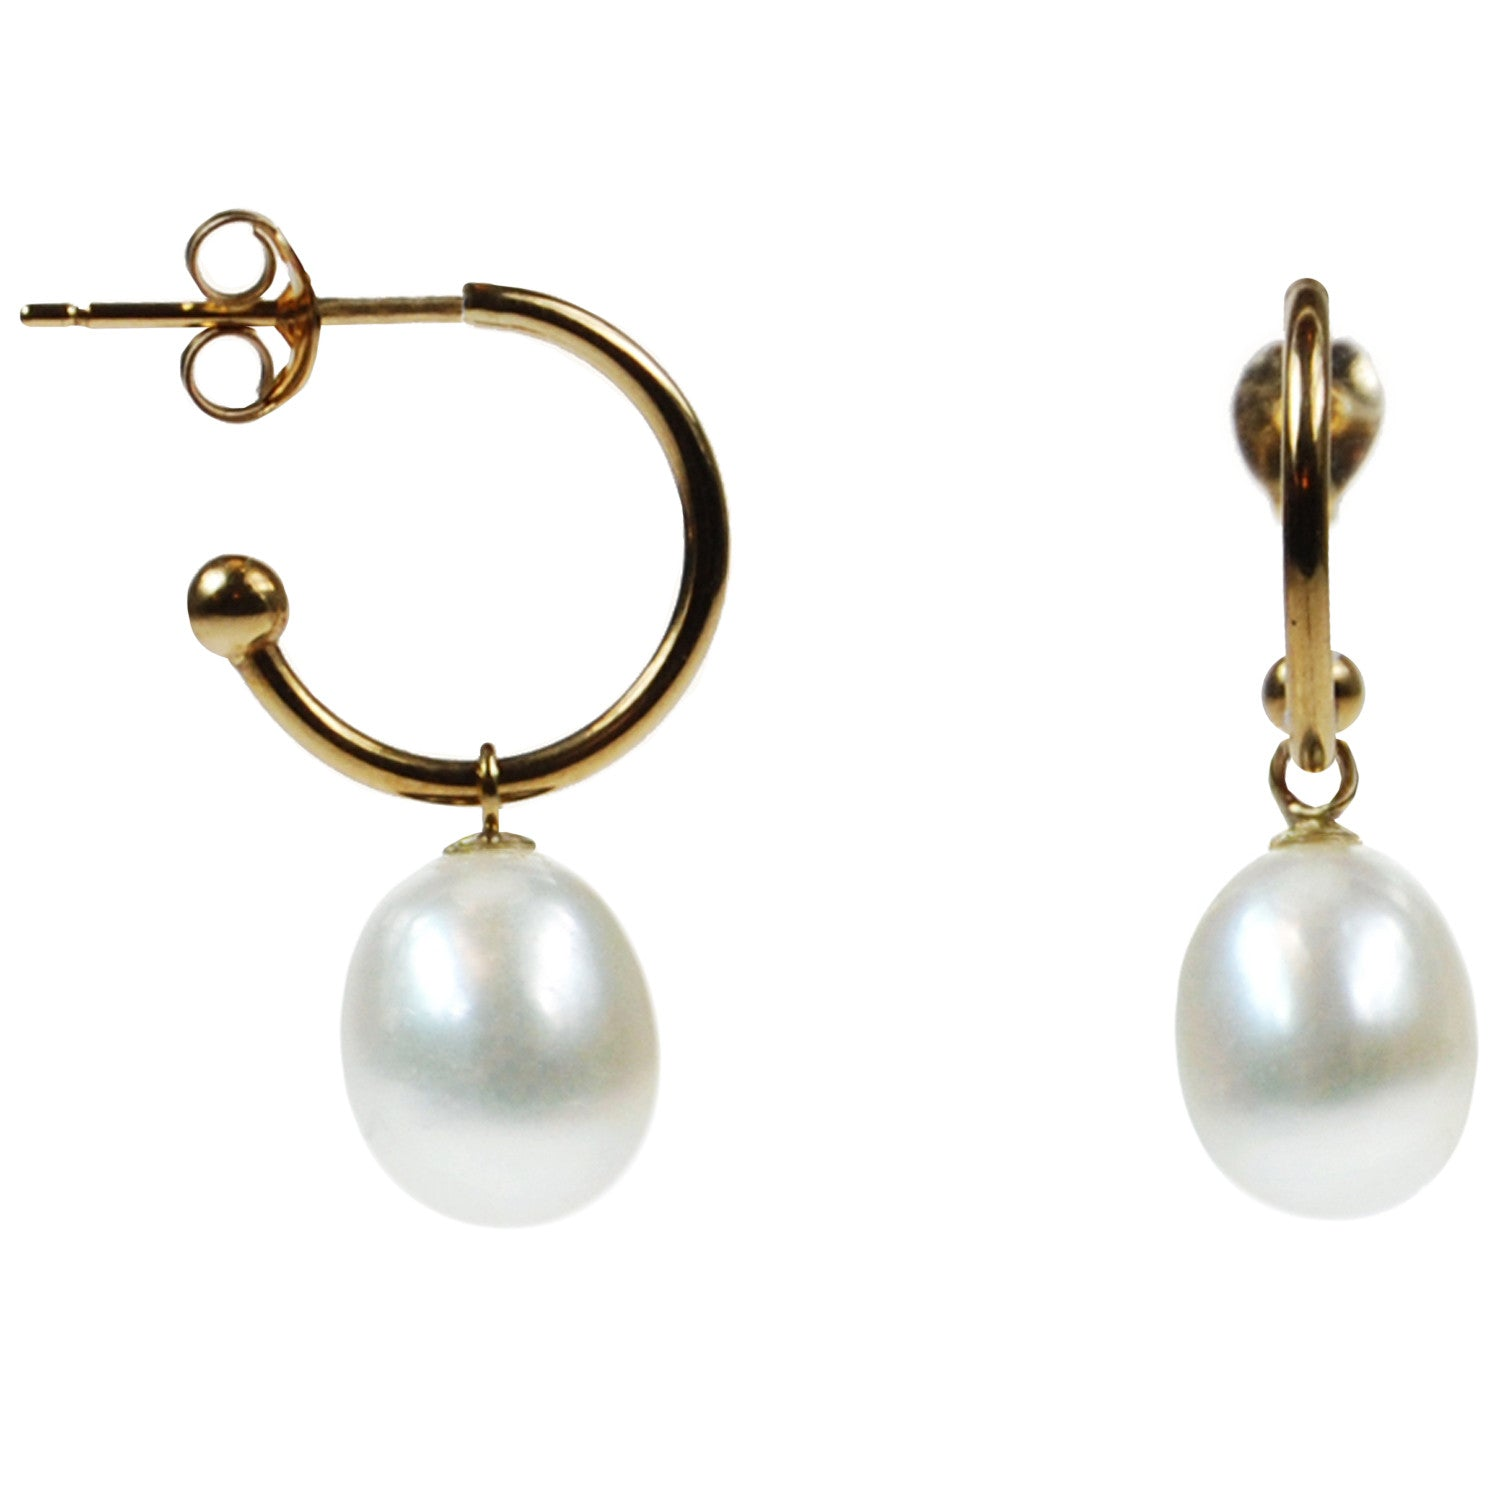 Freshwater Pearl Drop Earrings on 18ct Gold Open Hoops in White